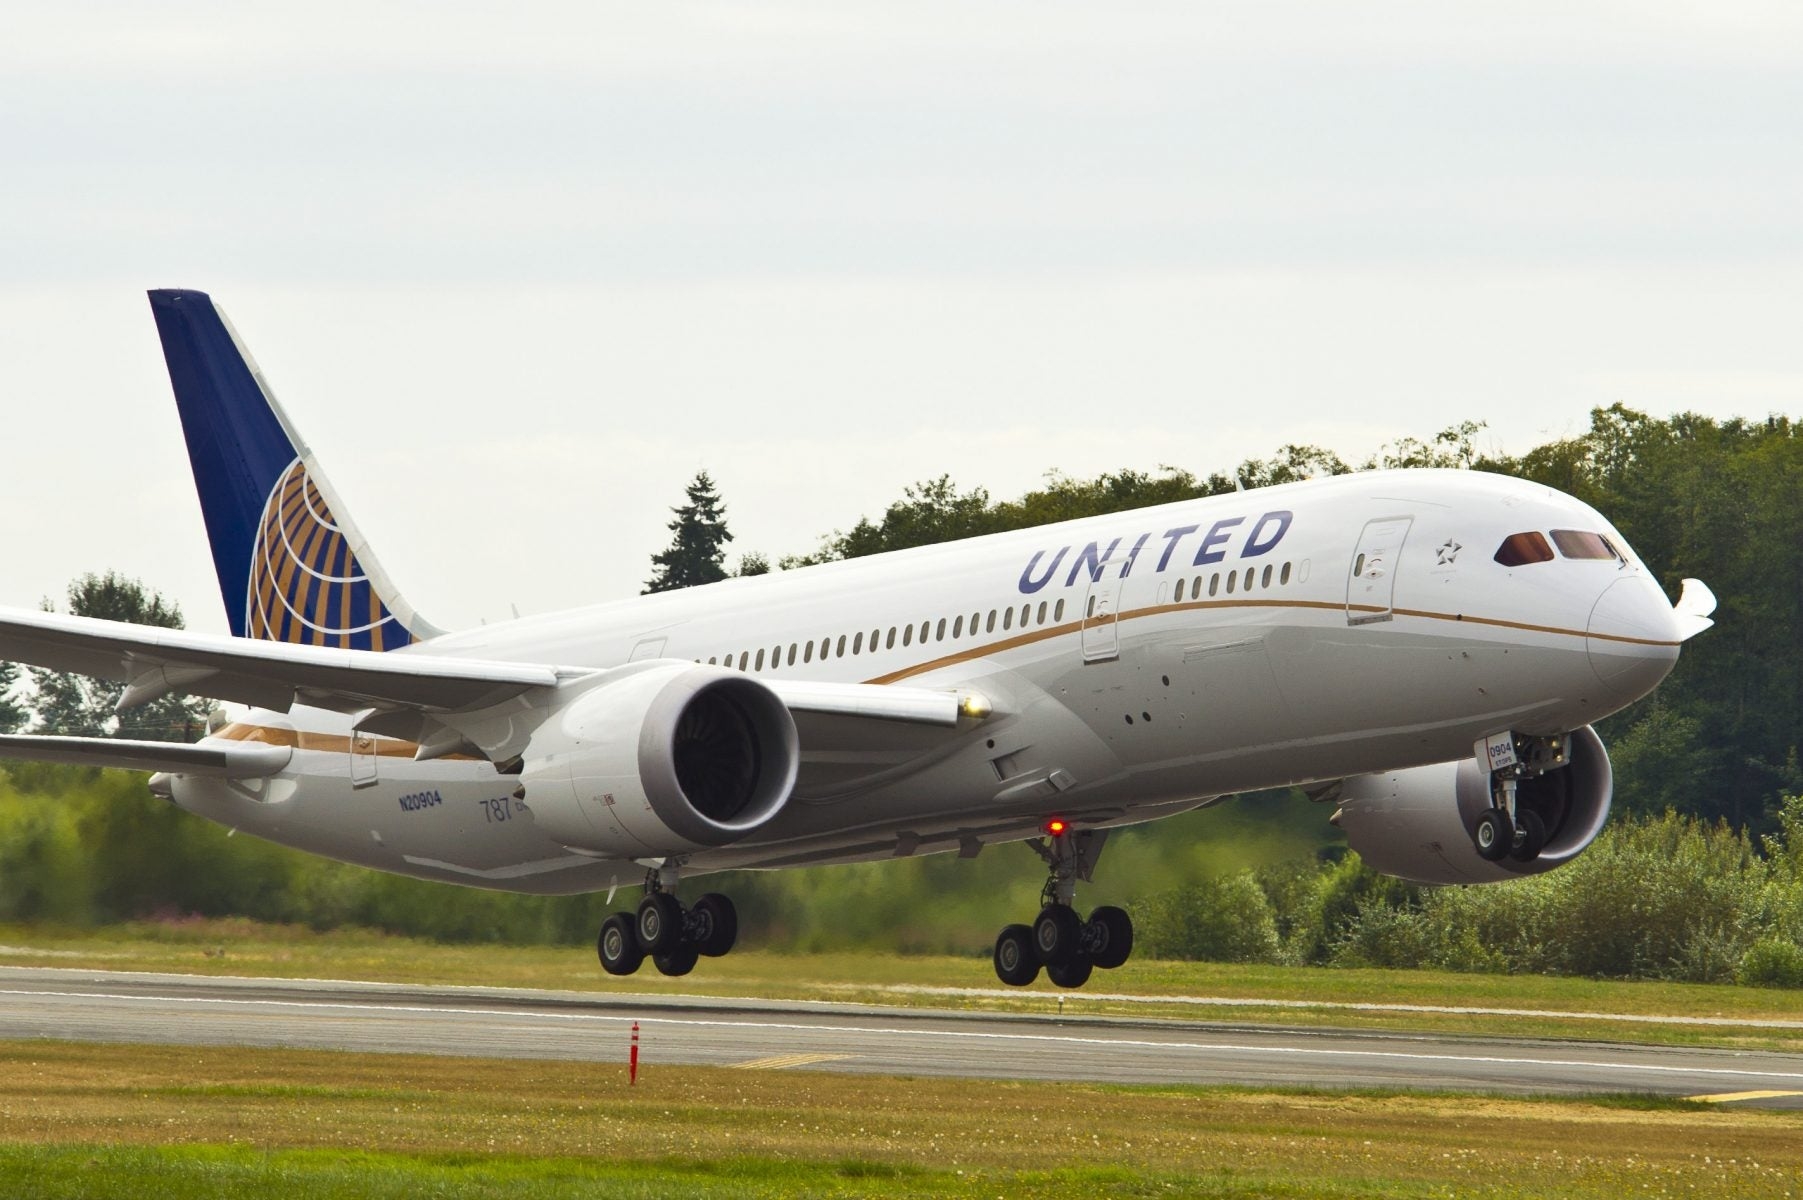 United Airlines Credit Card Bound to Be Impacted By The Airline's Customer Service Failures — Like Allegedly Forcing Passenger to Sit In Seat Soaked In Puke